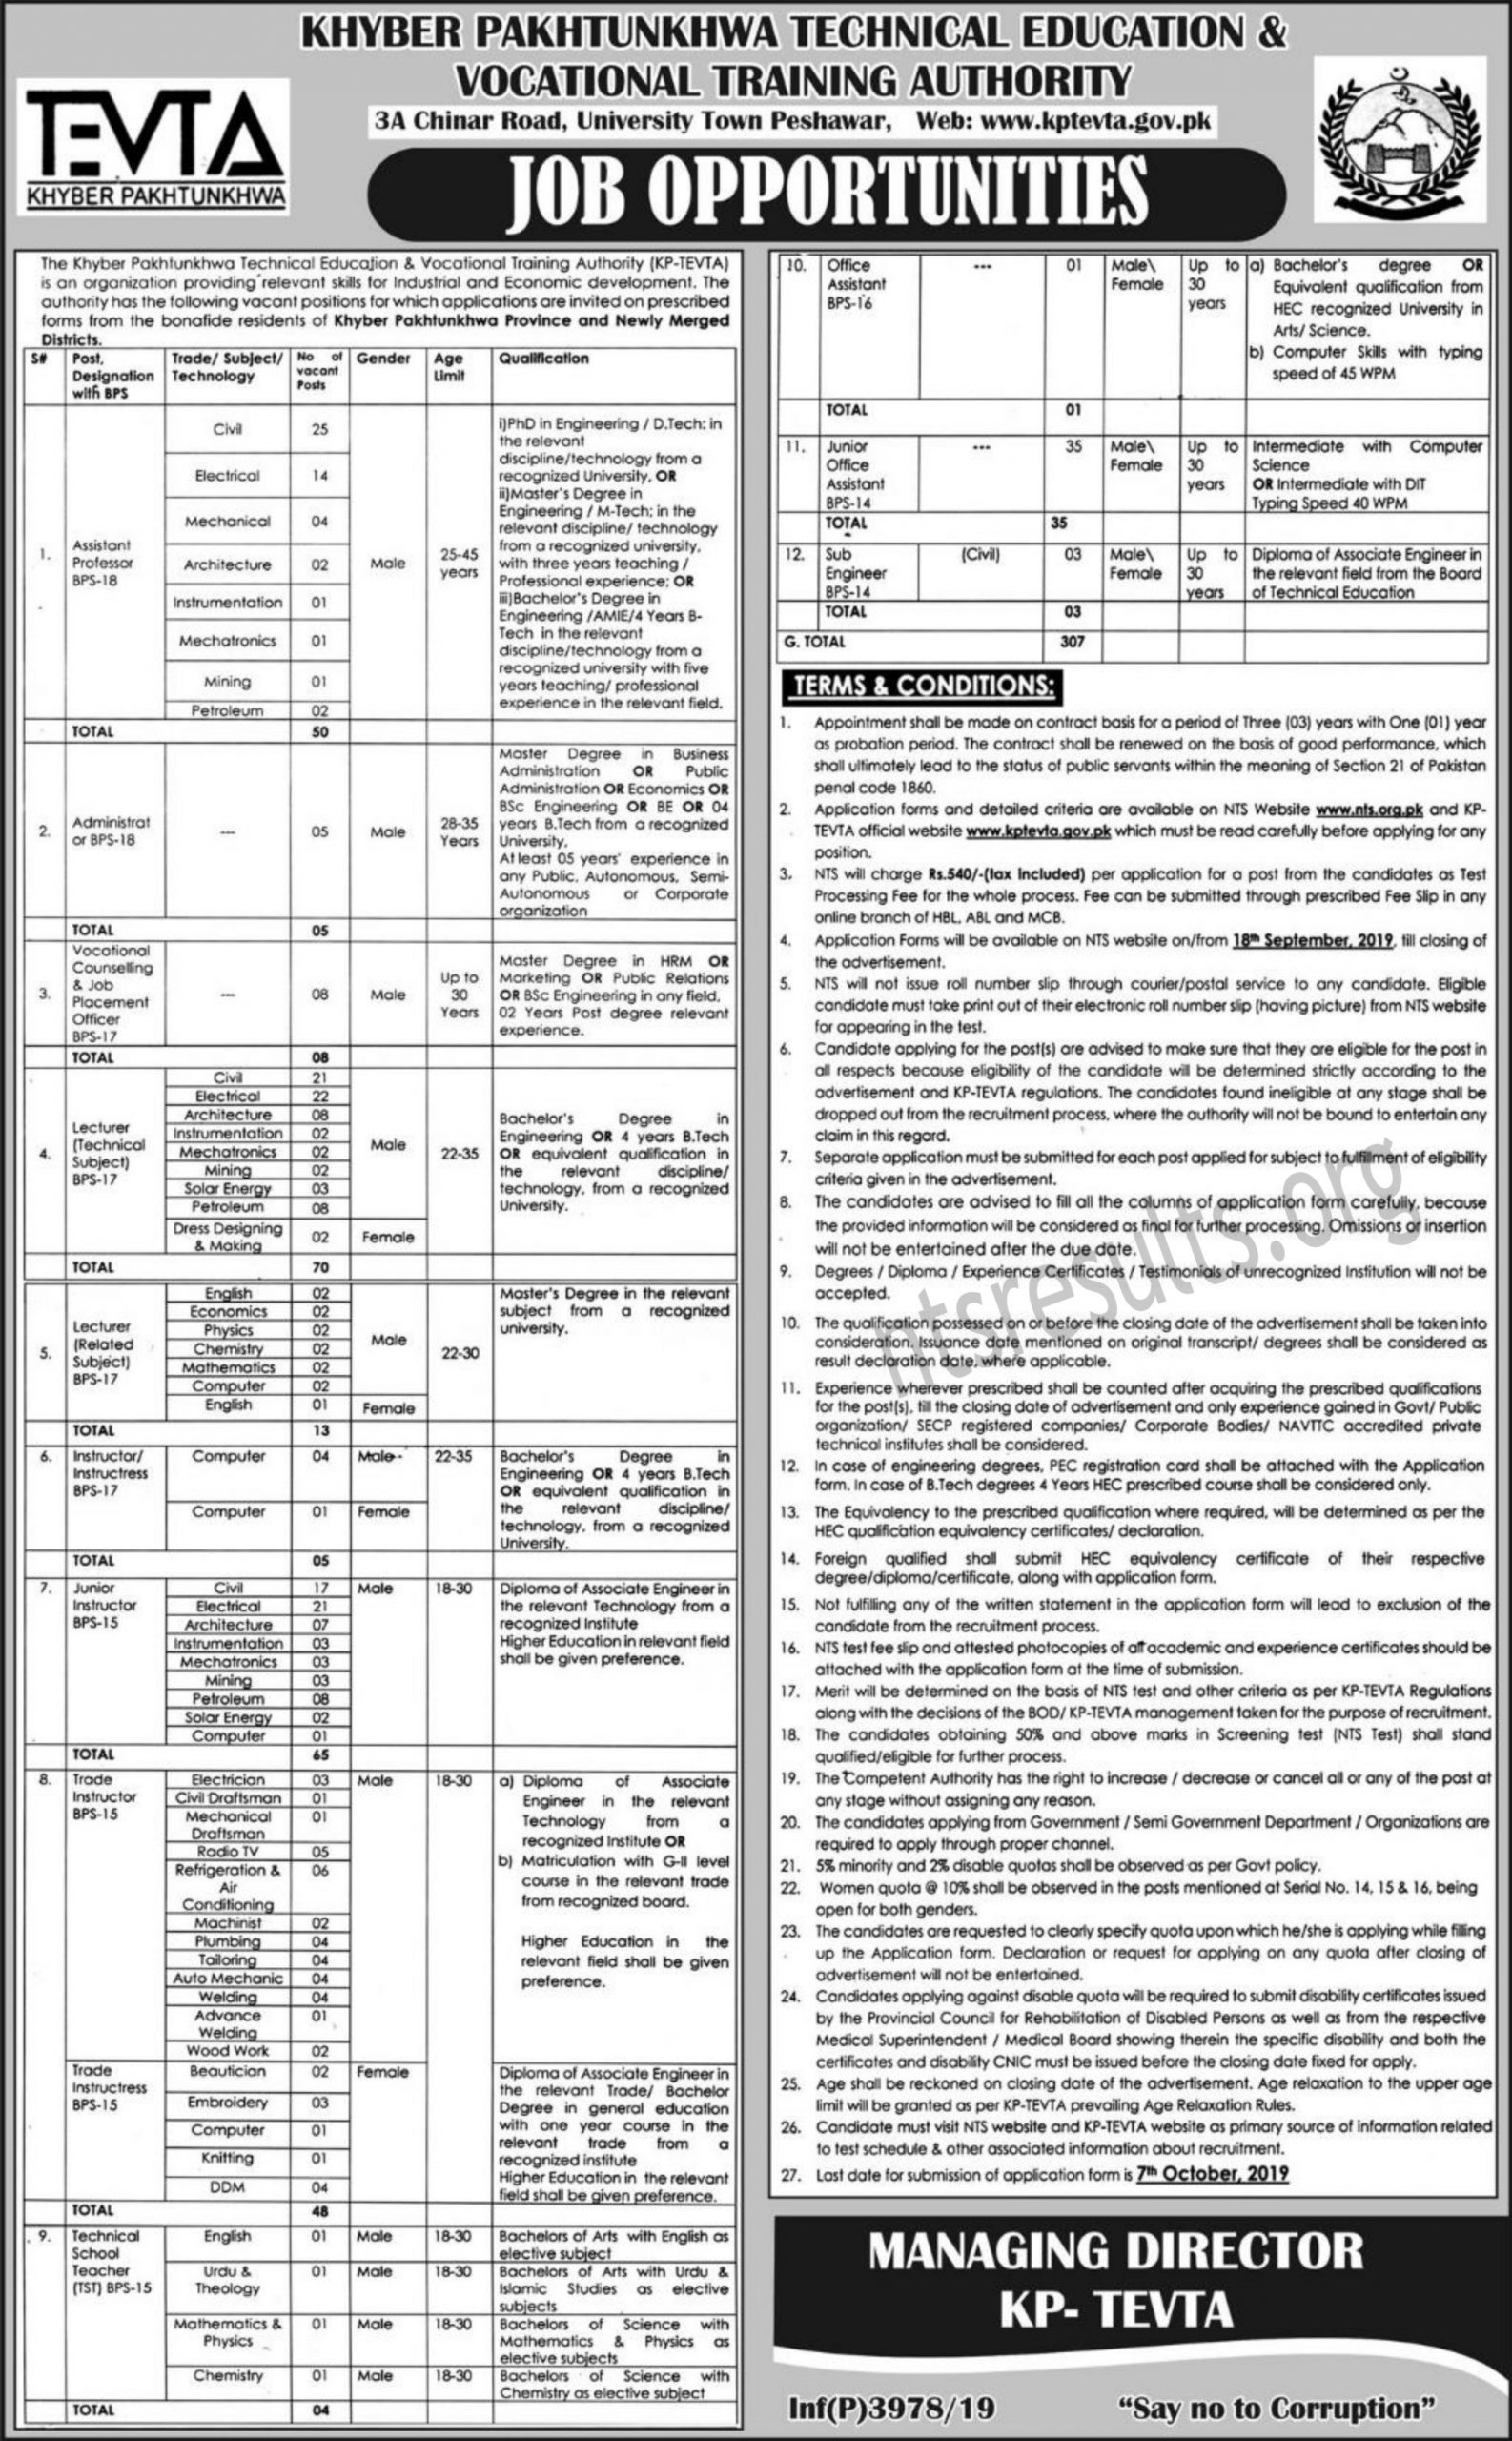 KPK Tevta Technical Education Vocational Training Authority NTS Test Answer Keys Result